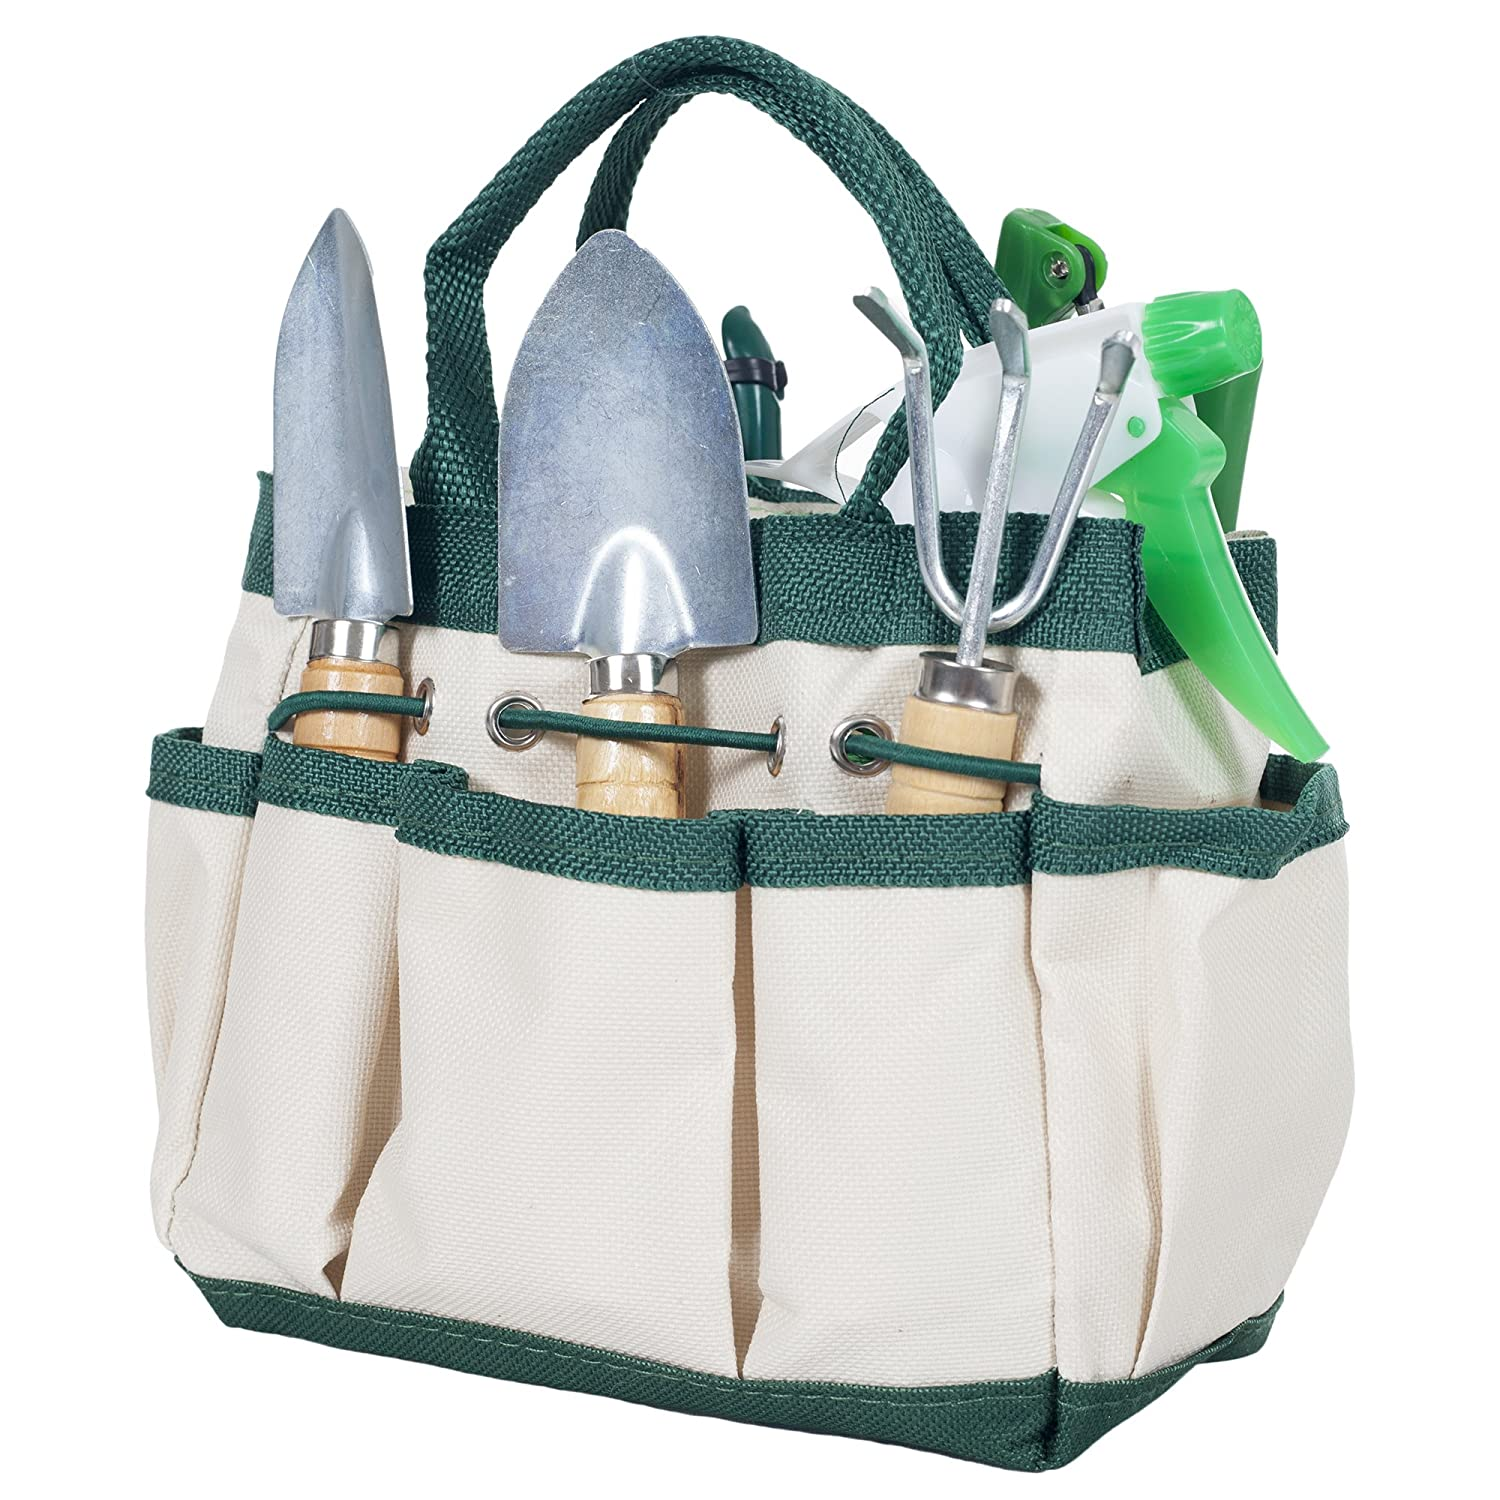 Pure Garden 7 Piece Gardening Tool Set – Mini Planting and Repotting Kit and Carrying Tote Bag Organizer for Succulents, Herbs, and Bonsai Plants